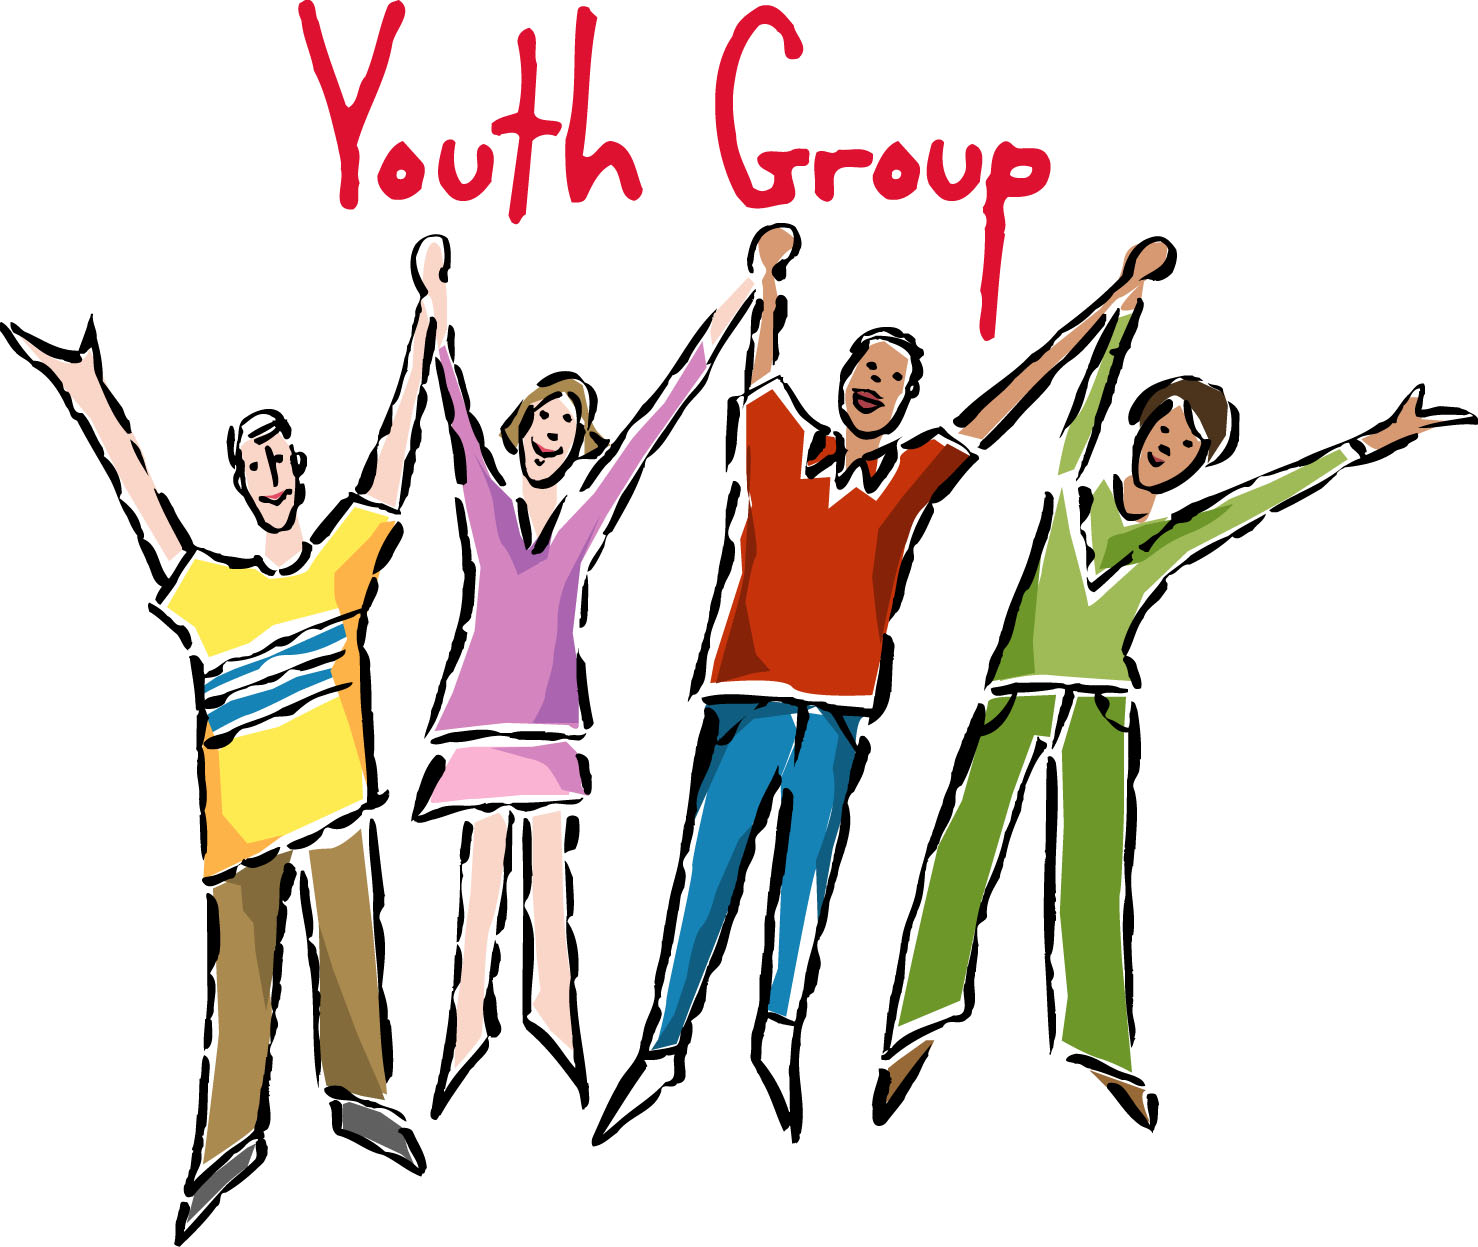 Youth4work : helping youth to grab opportunities